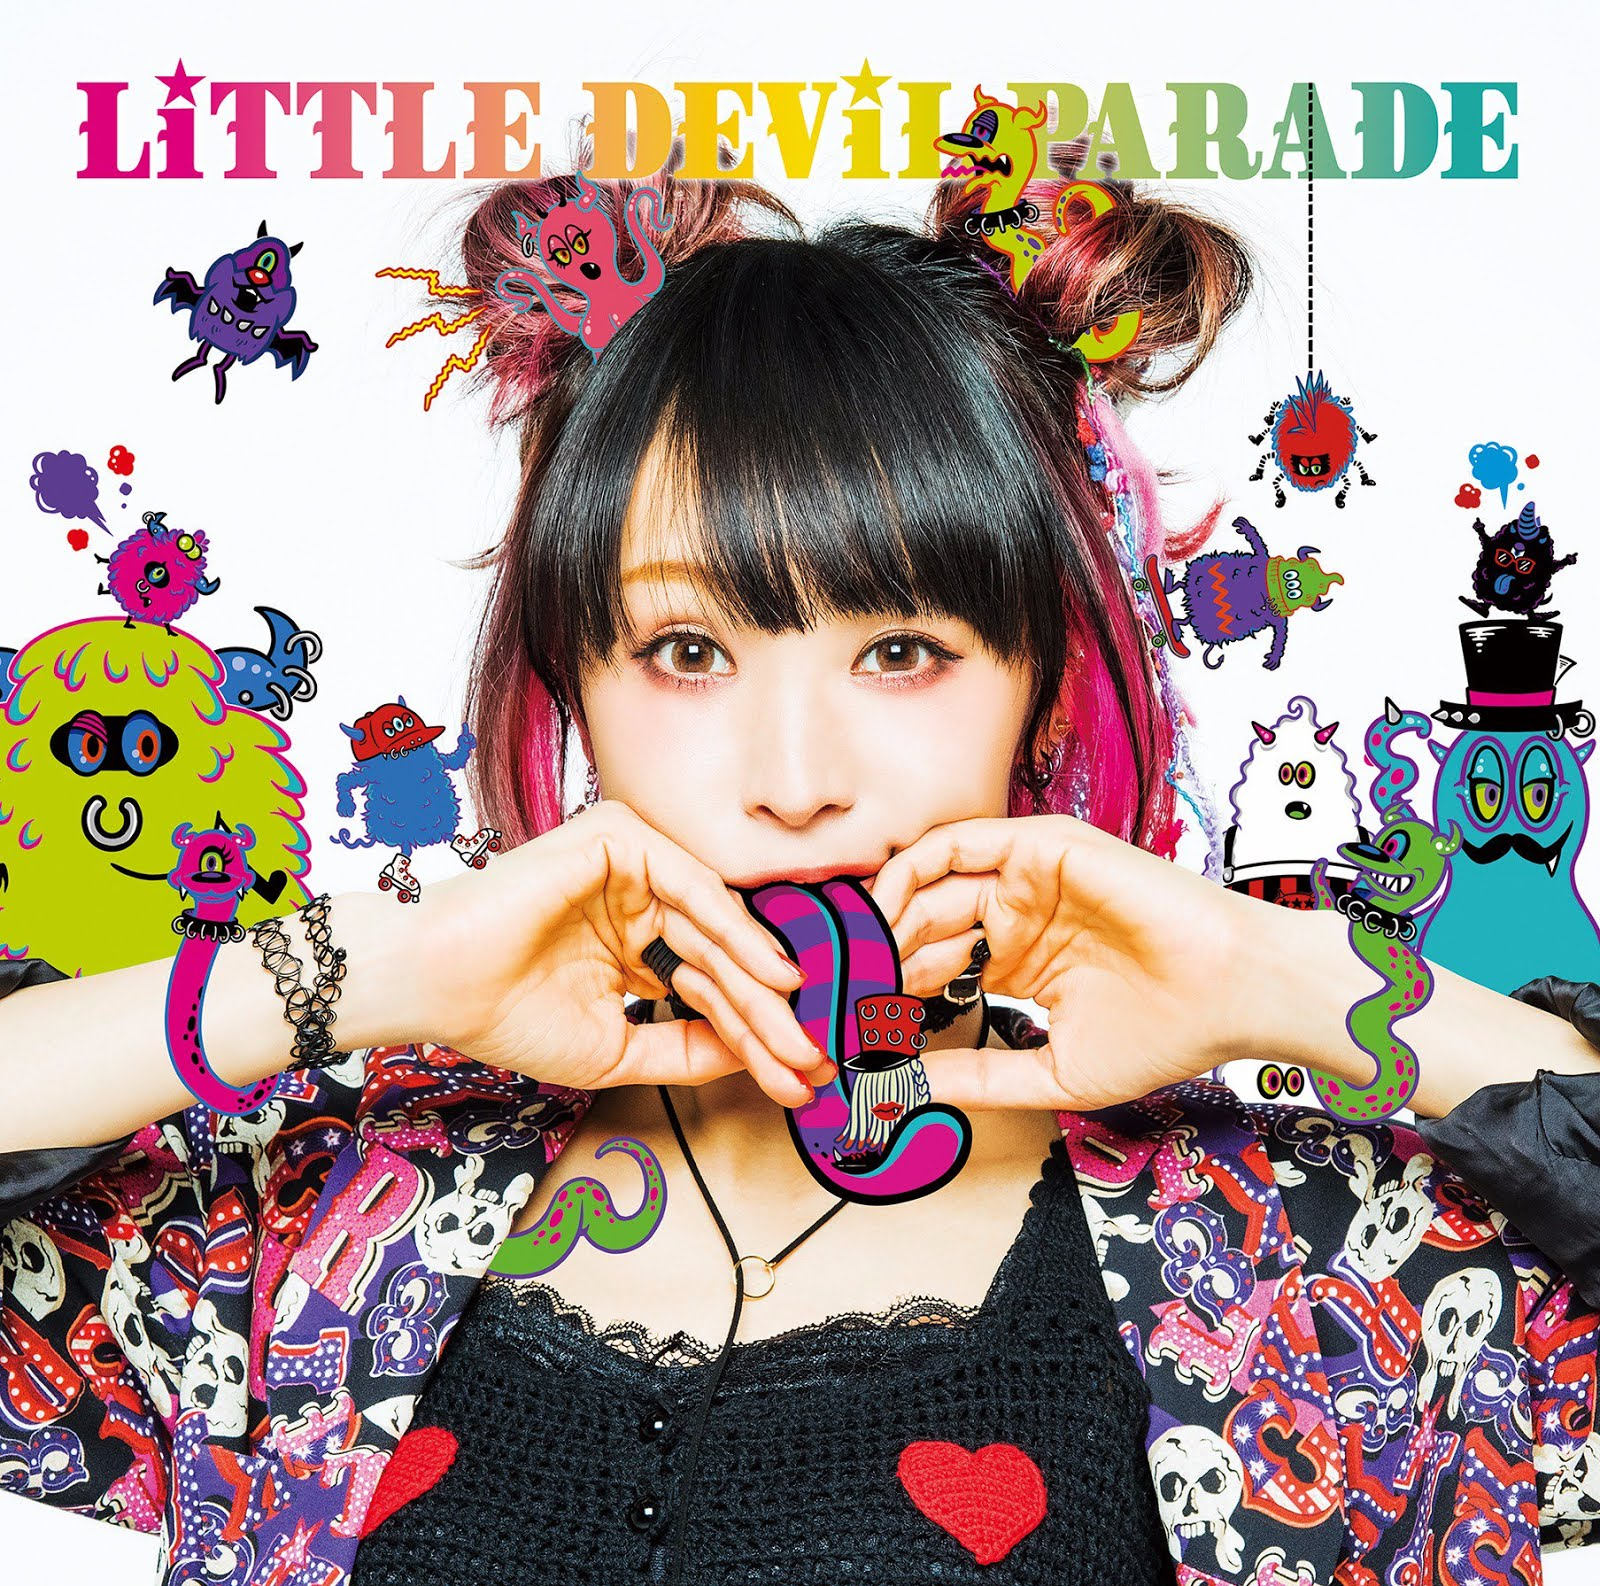 NekoPOP-LiSA-Little-Devil-Parade-best-cover